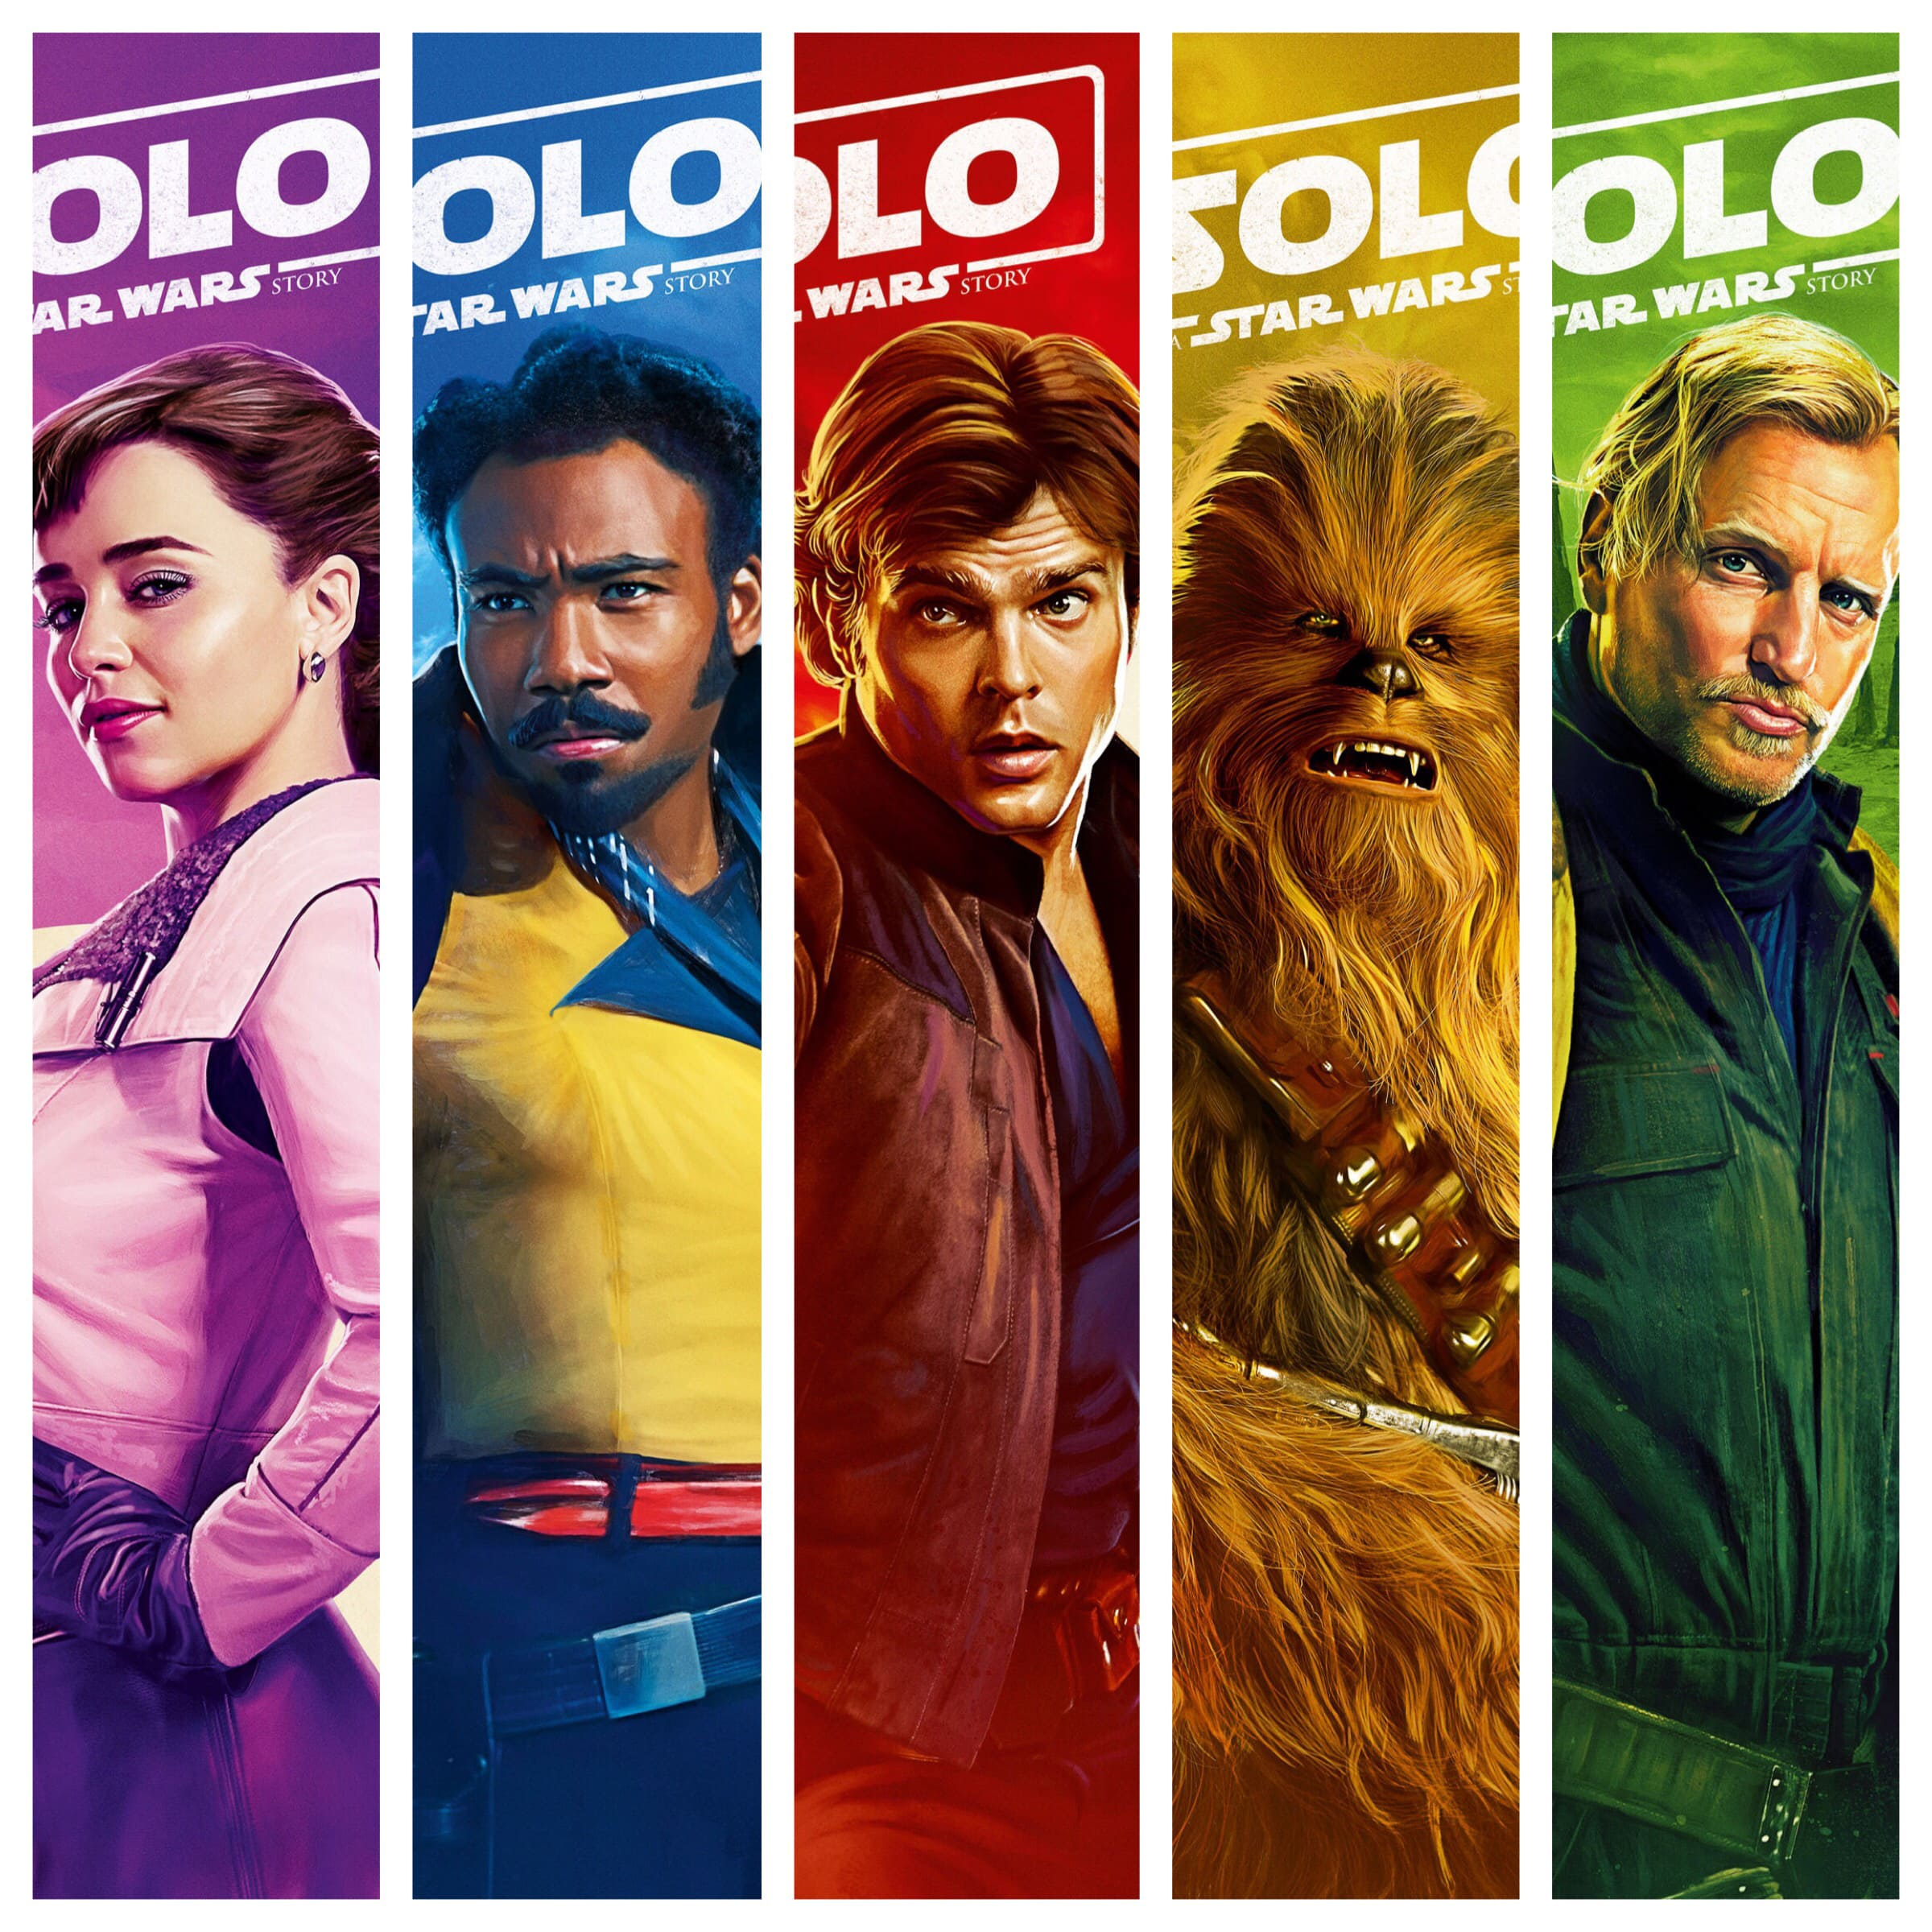 New 'Solo: A Star Wars Story' movie posters unveiled at Cannes Film Festival